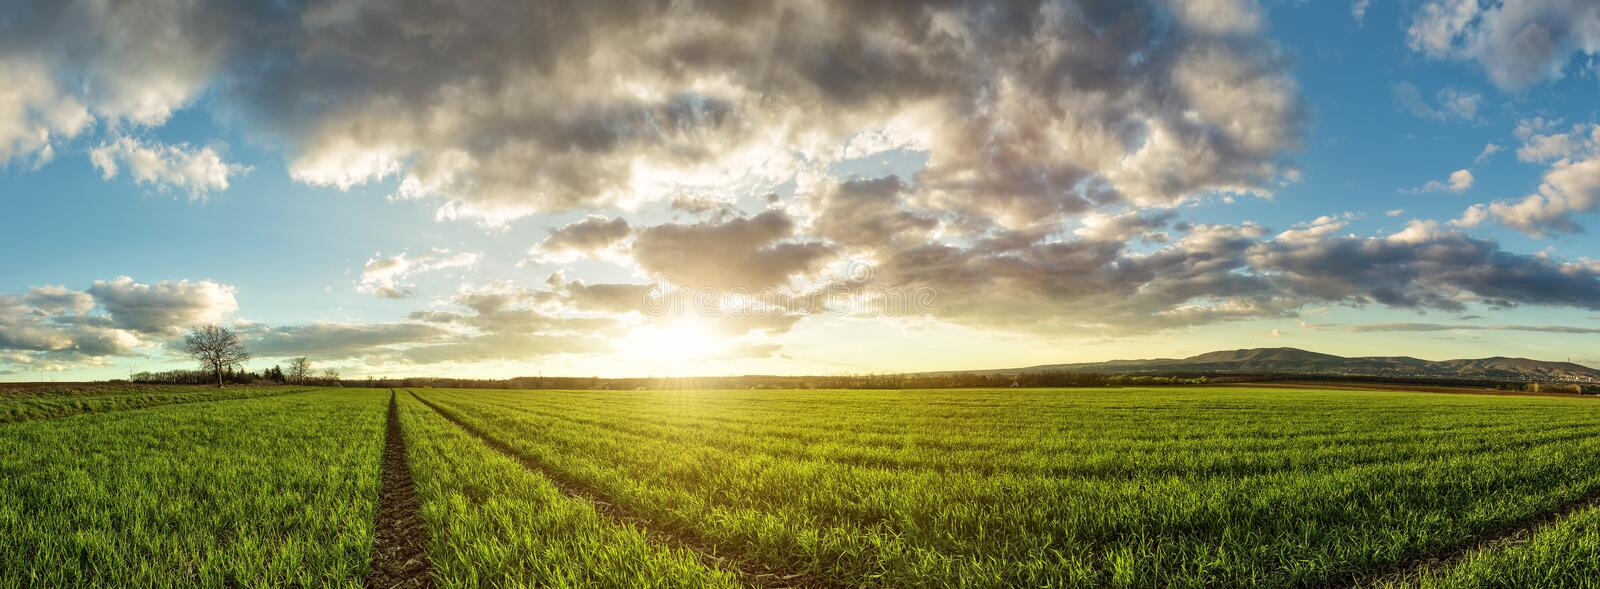 Beautiful green wheat field with fabulous clouds royalty free stock images